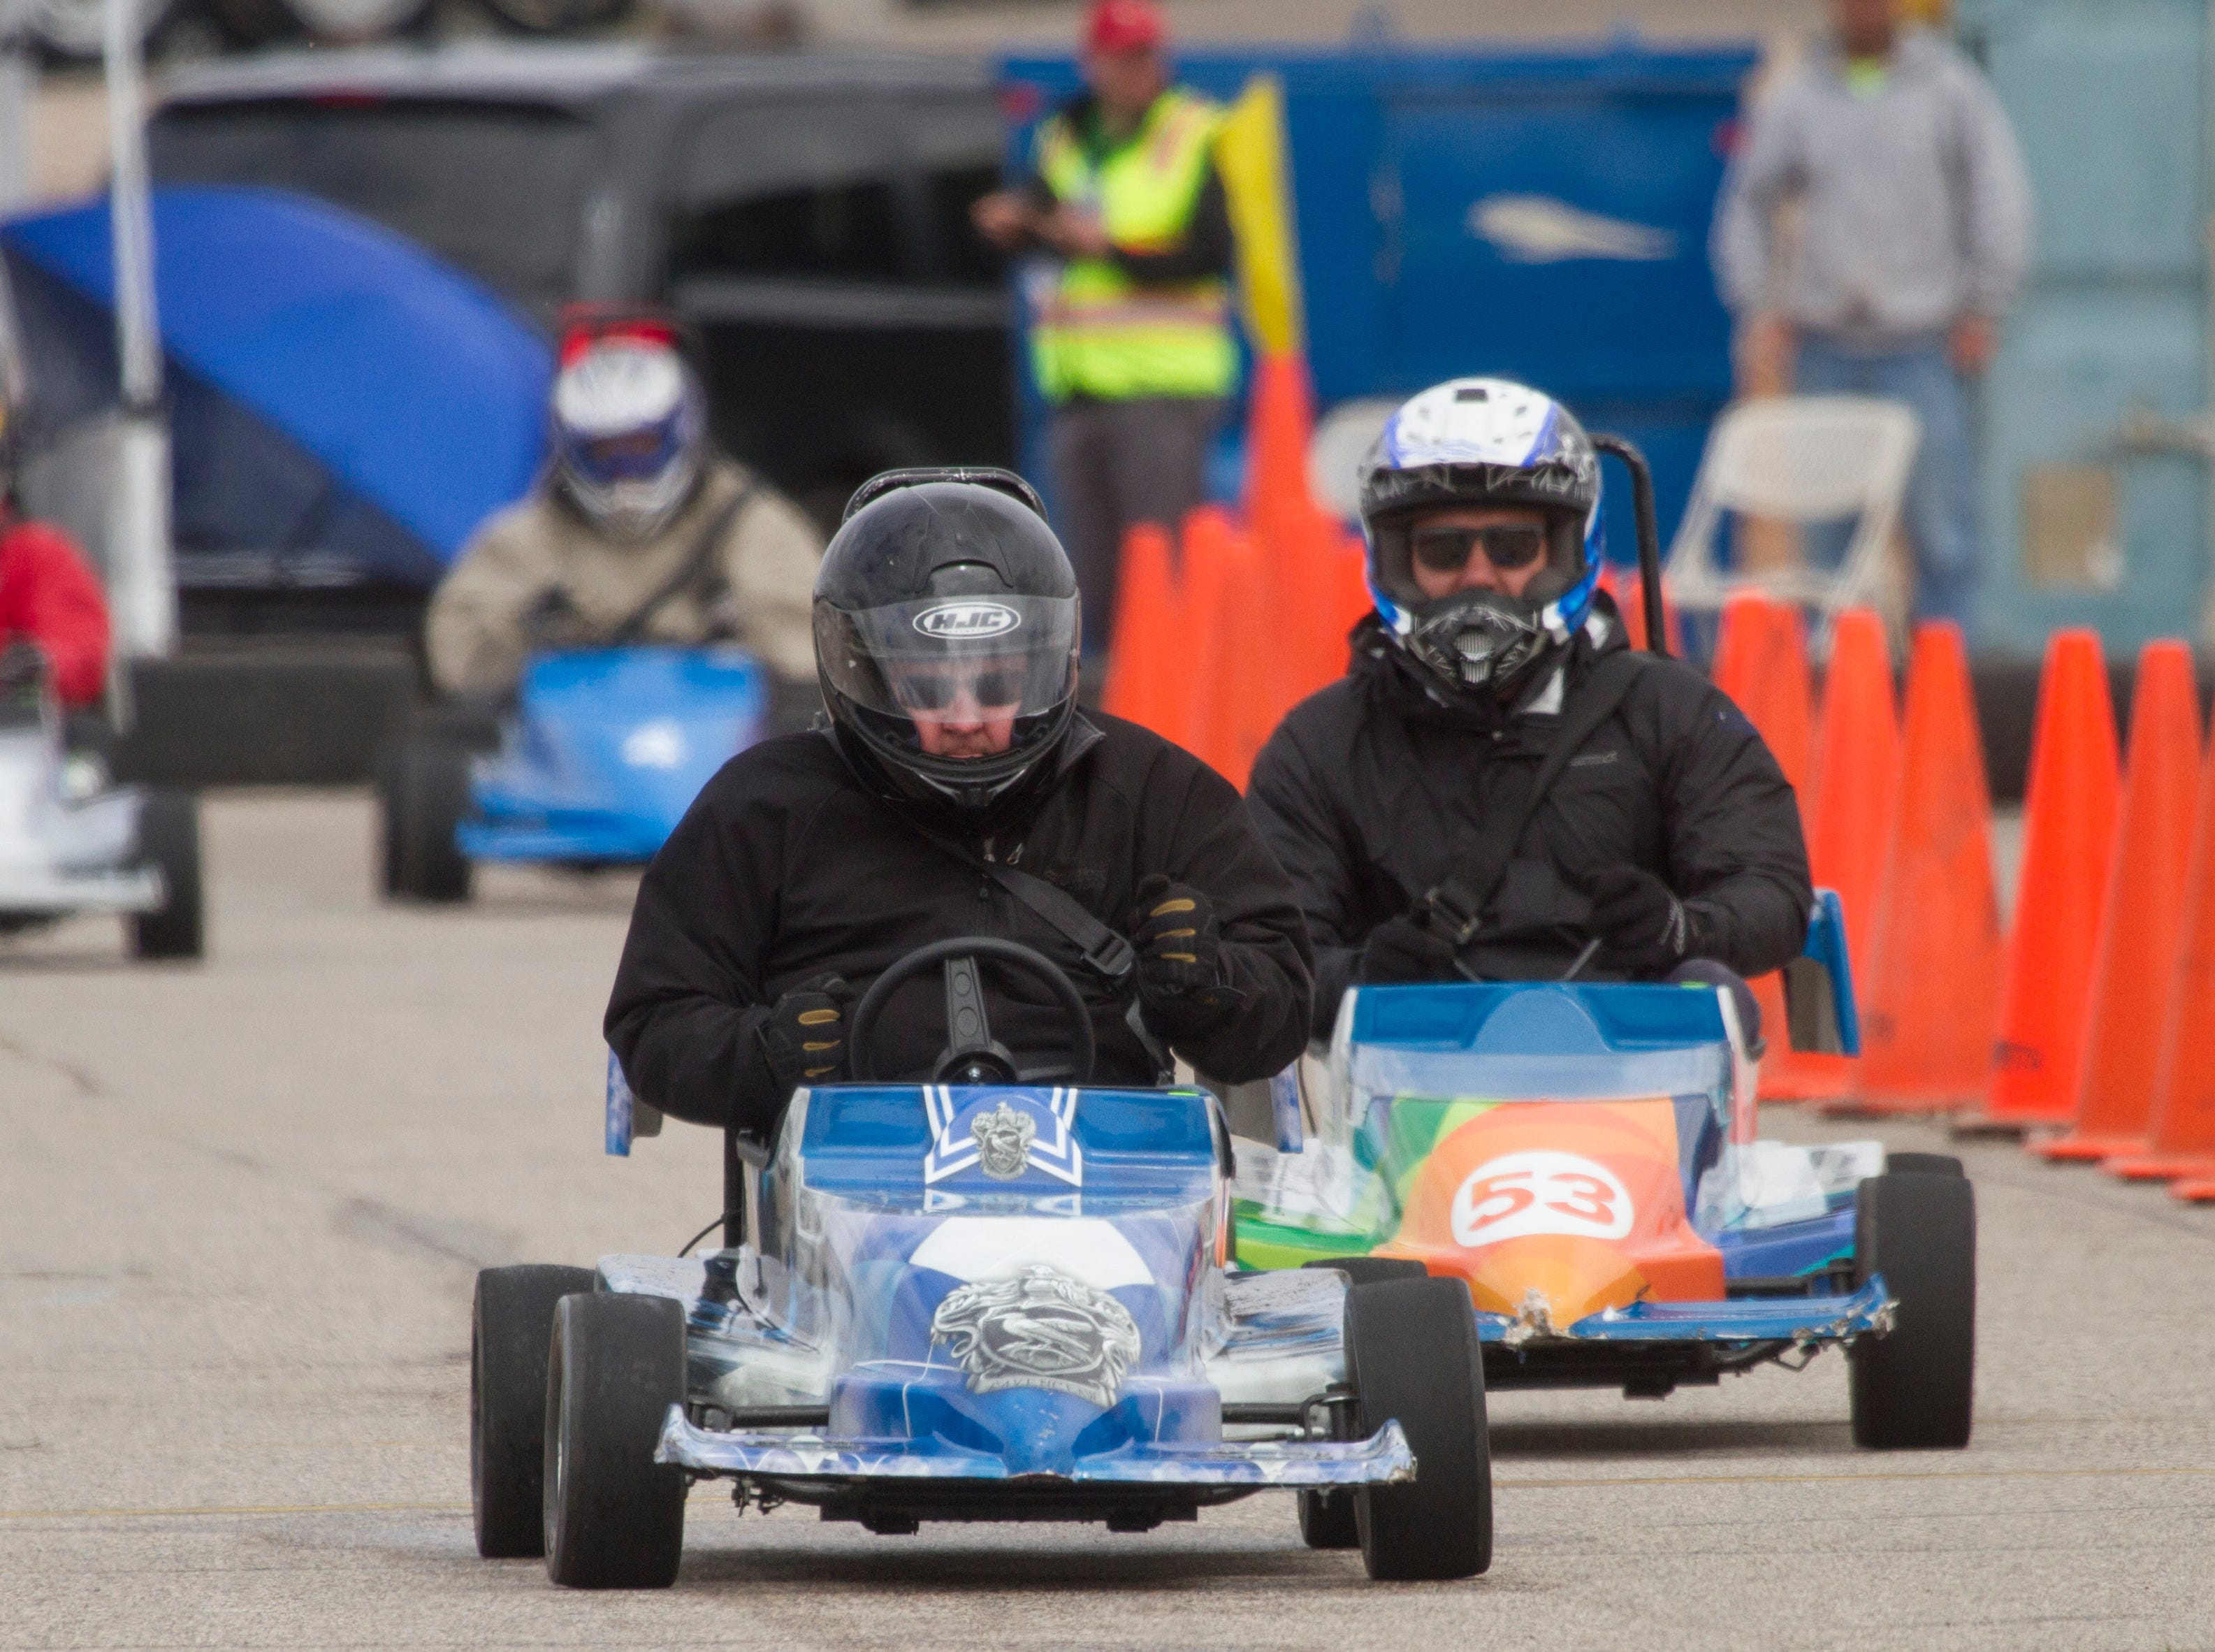 SkyWest business partners from around the world gather at Tech Ridge for the annual Mini Indy Friday, March 22, 2019.